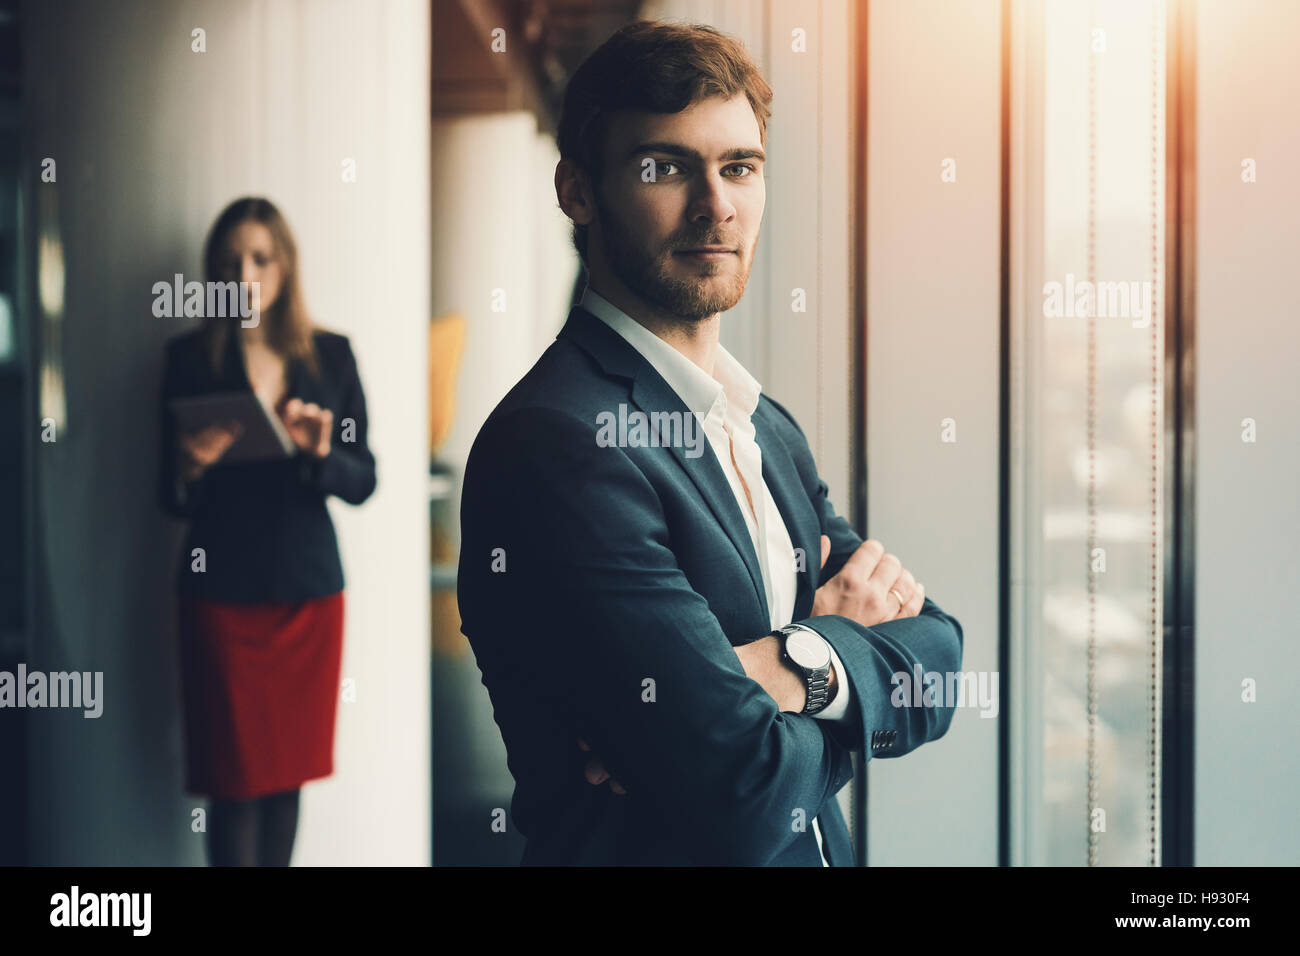 Group Of Business People In Office Interior Serious Man In Formal